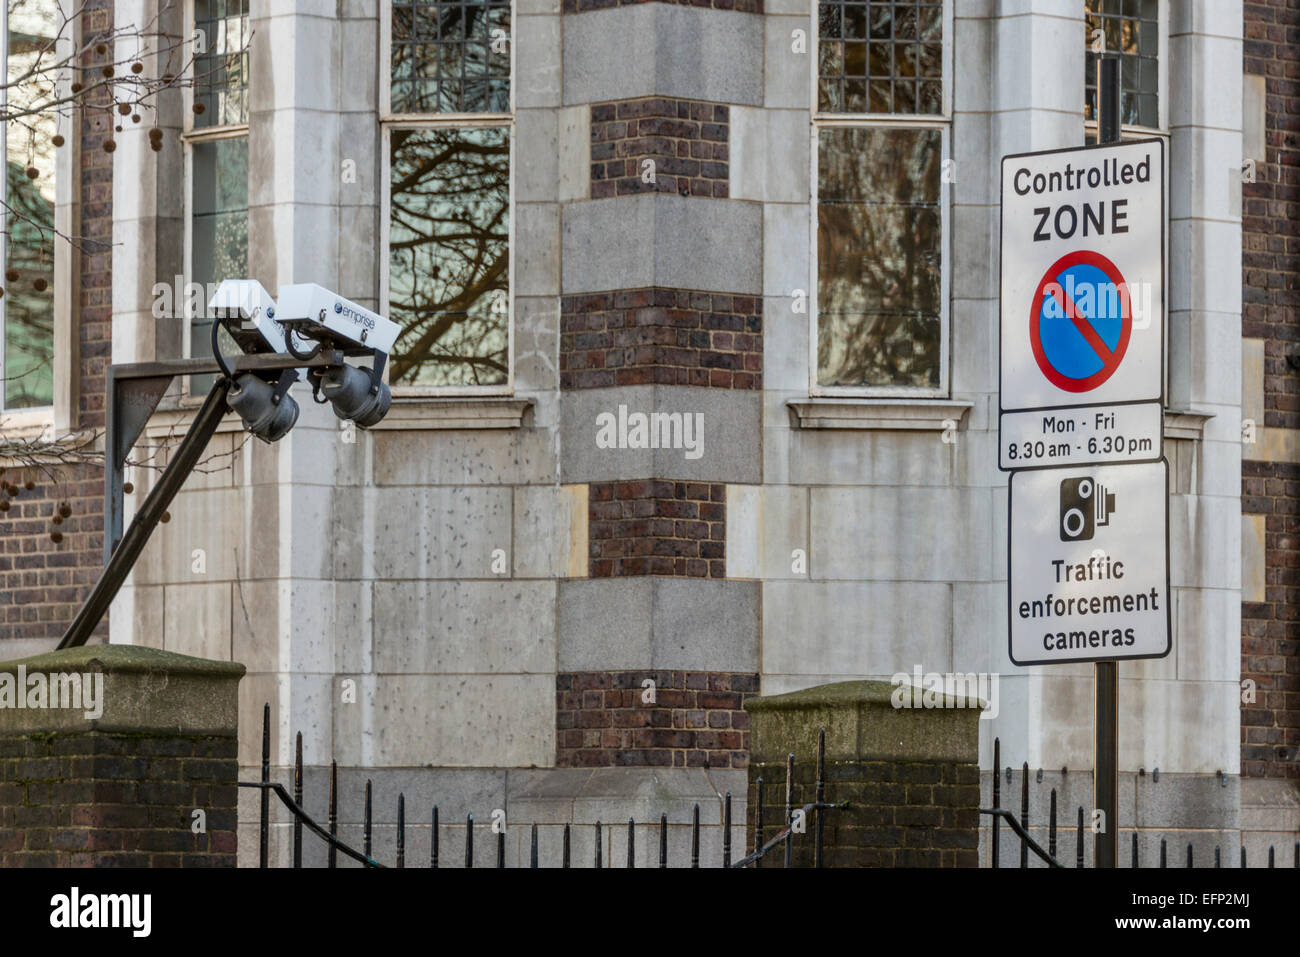 Traffic enforcement cameras and CCTV in the Borough of Westminster London - Stock Image